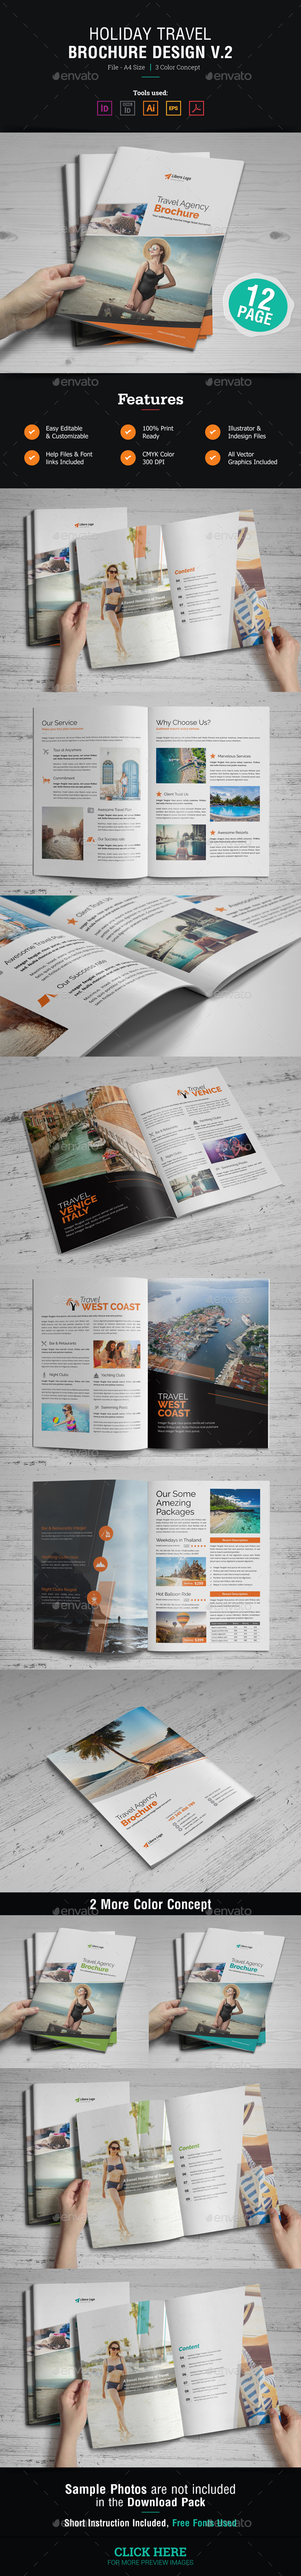 Holiday Travel Brochure Design v2 - Corporate Brochures